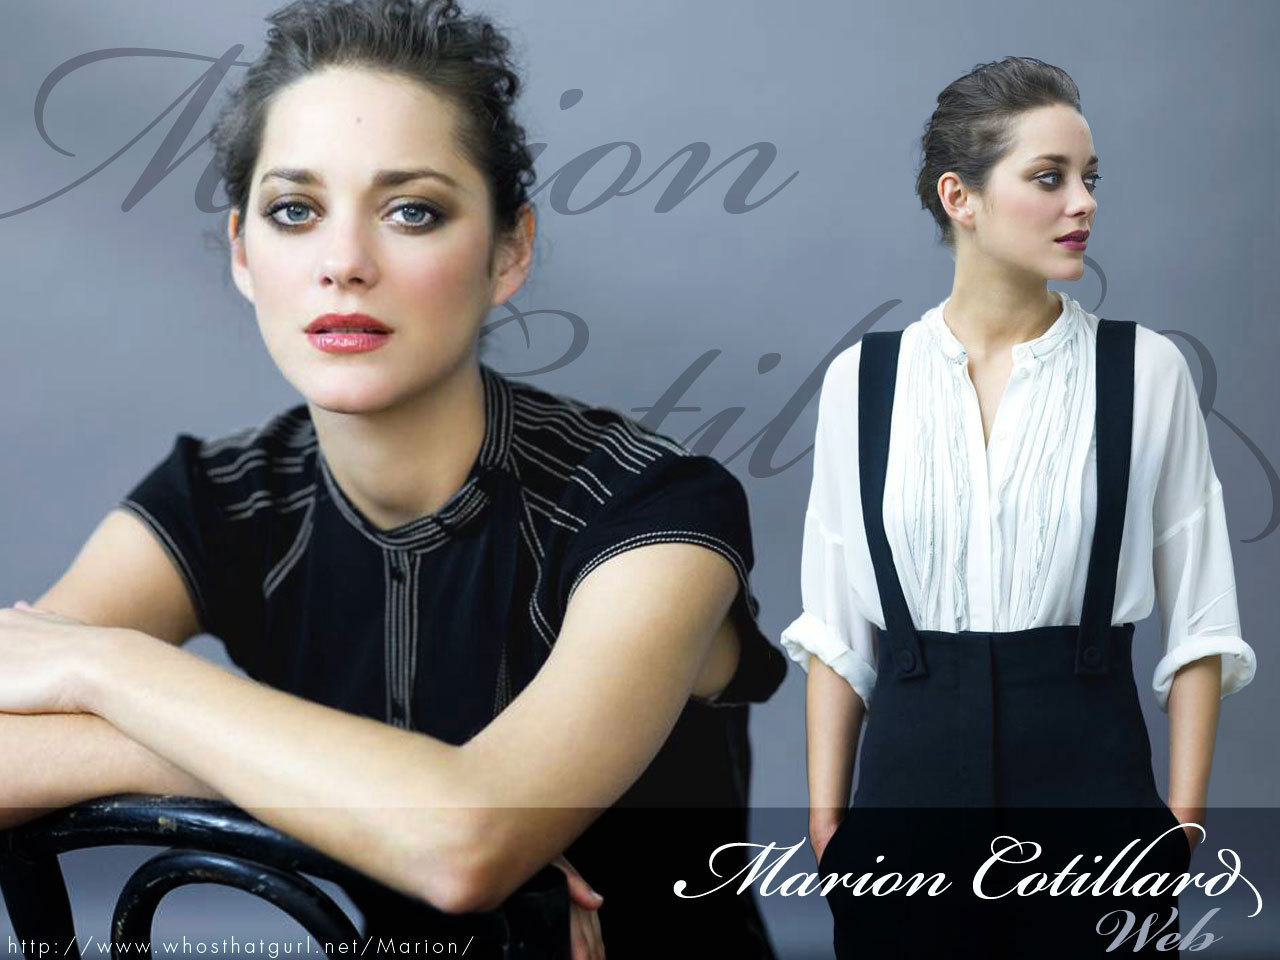 Marion Cotillard - Photo Actress